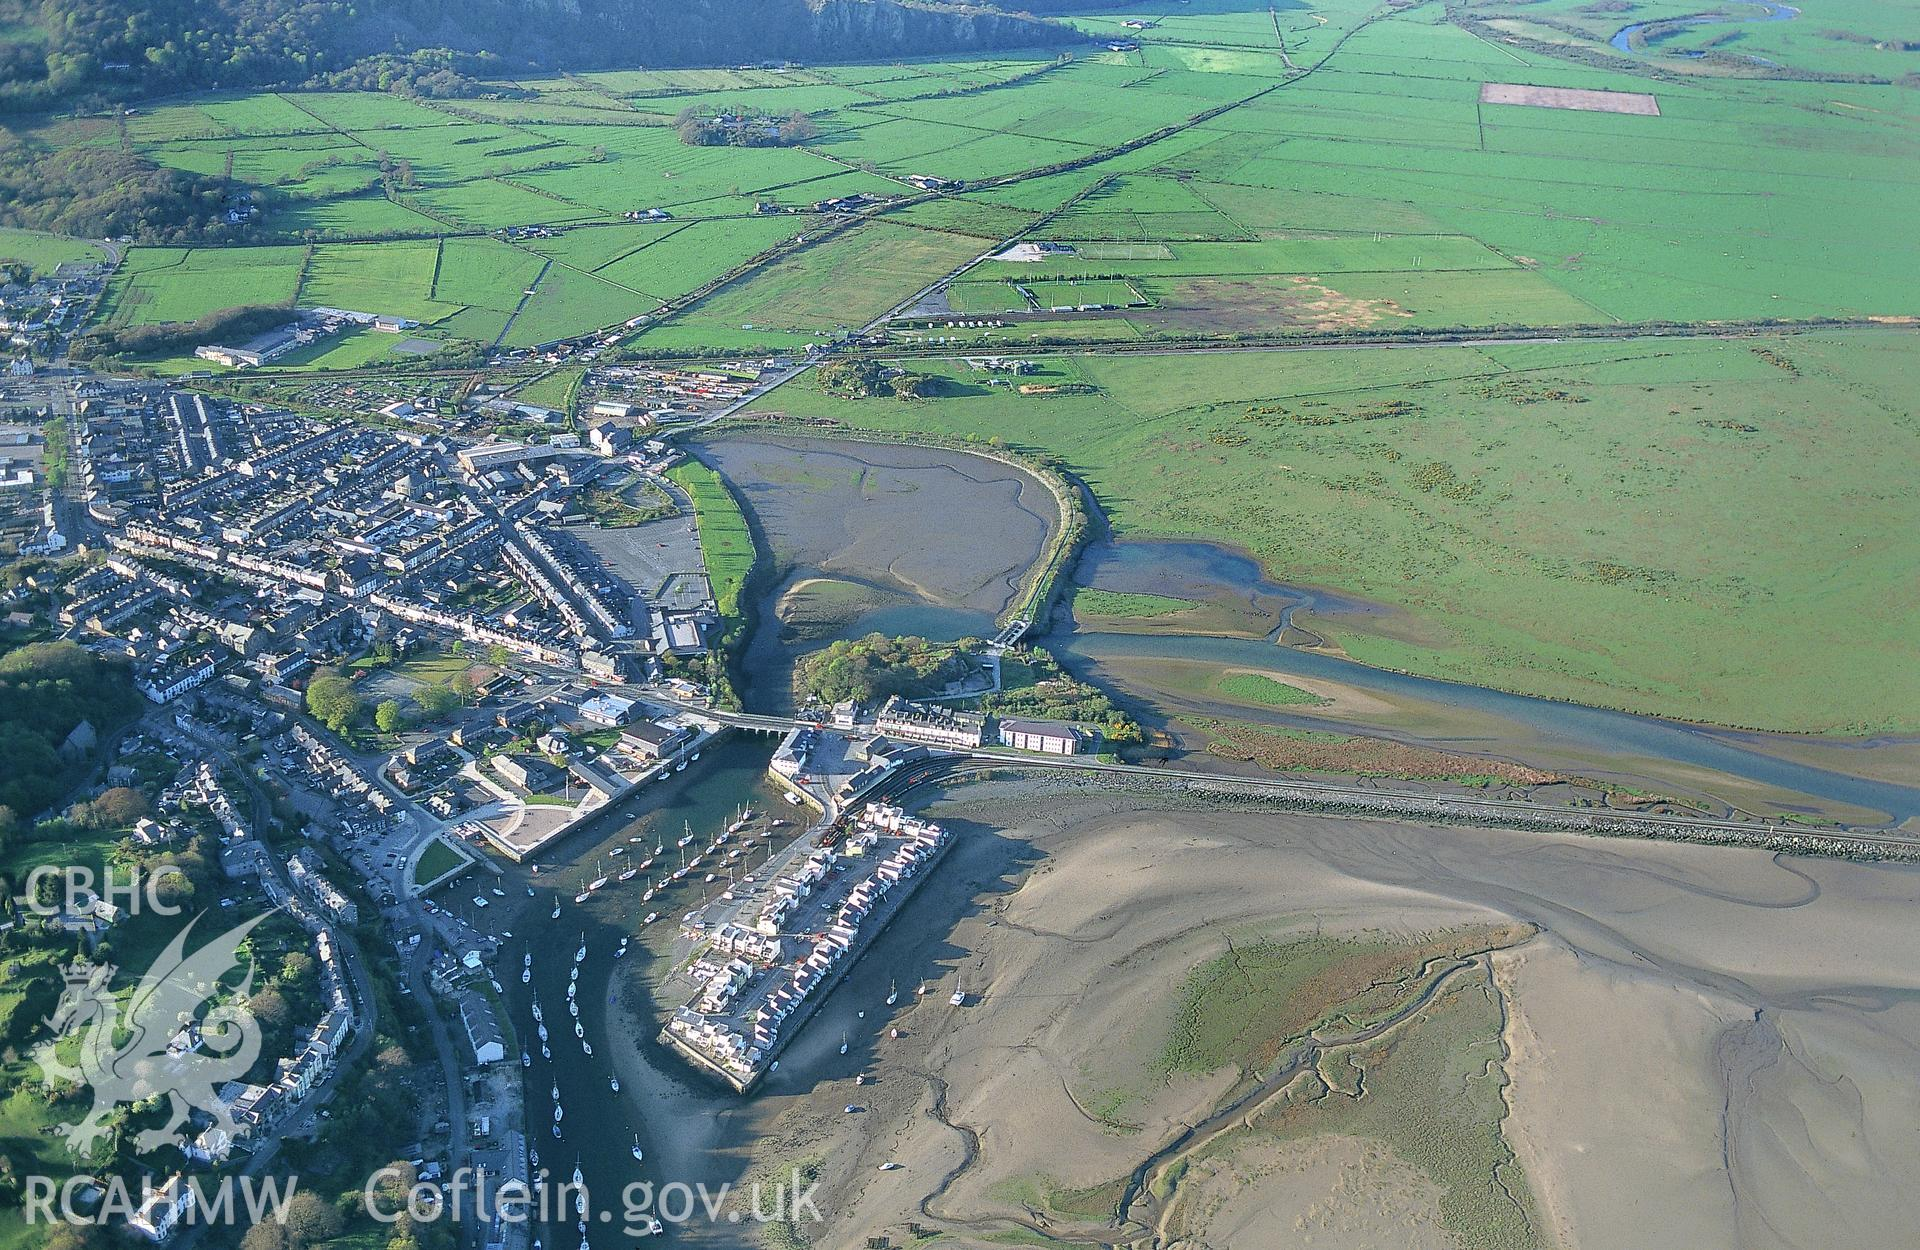 RCAHMW colour slide oblique aerial photograph of Traeth Mawr, Porthmadoc, taken by C.R.Musson on the 06/05/1996